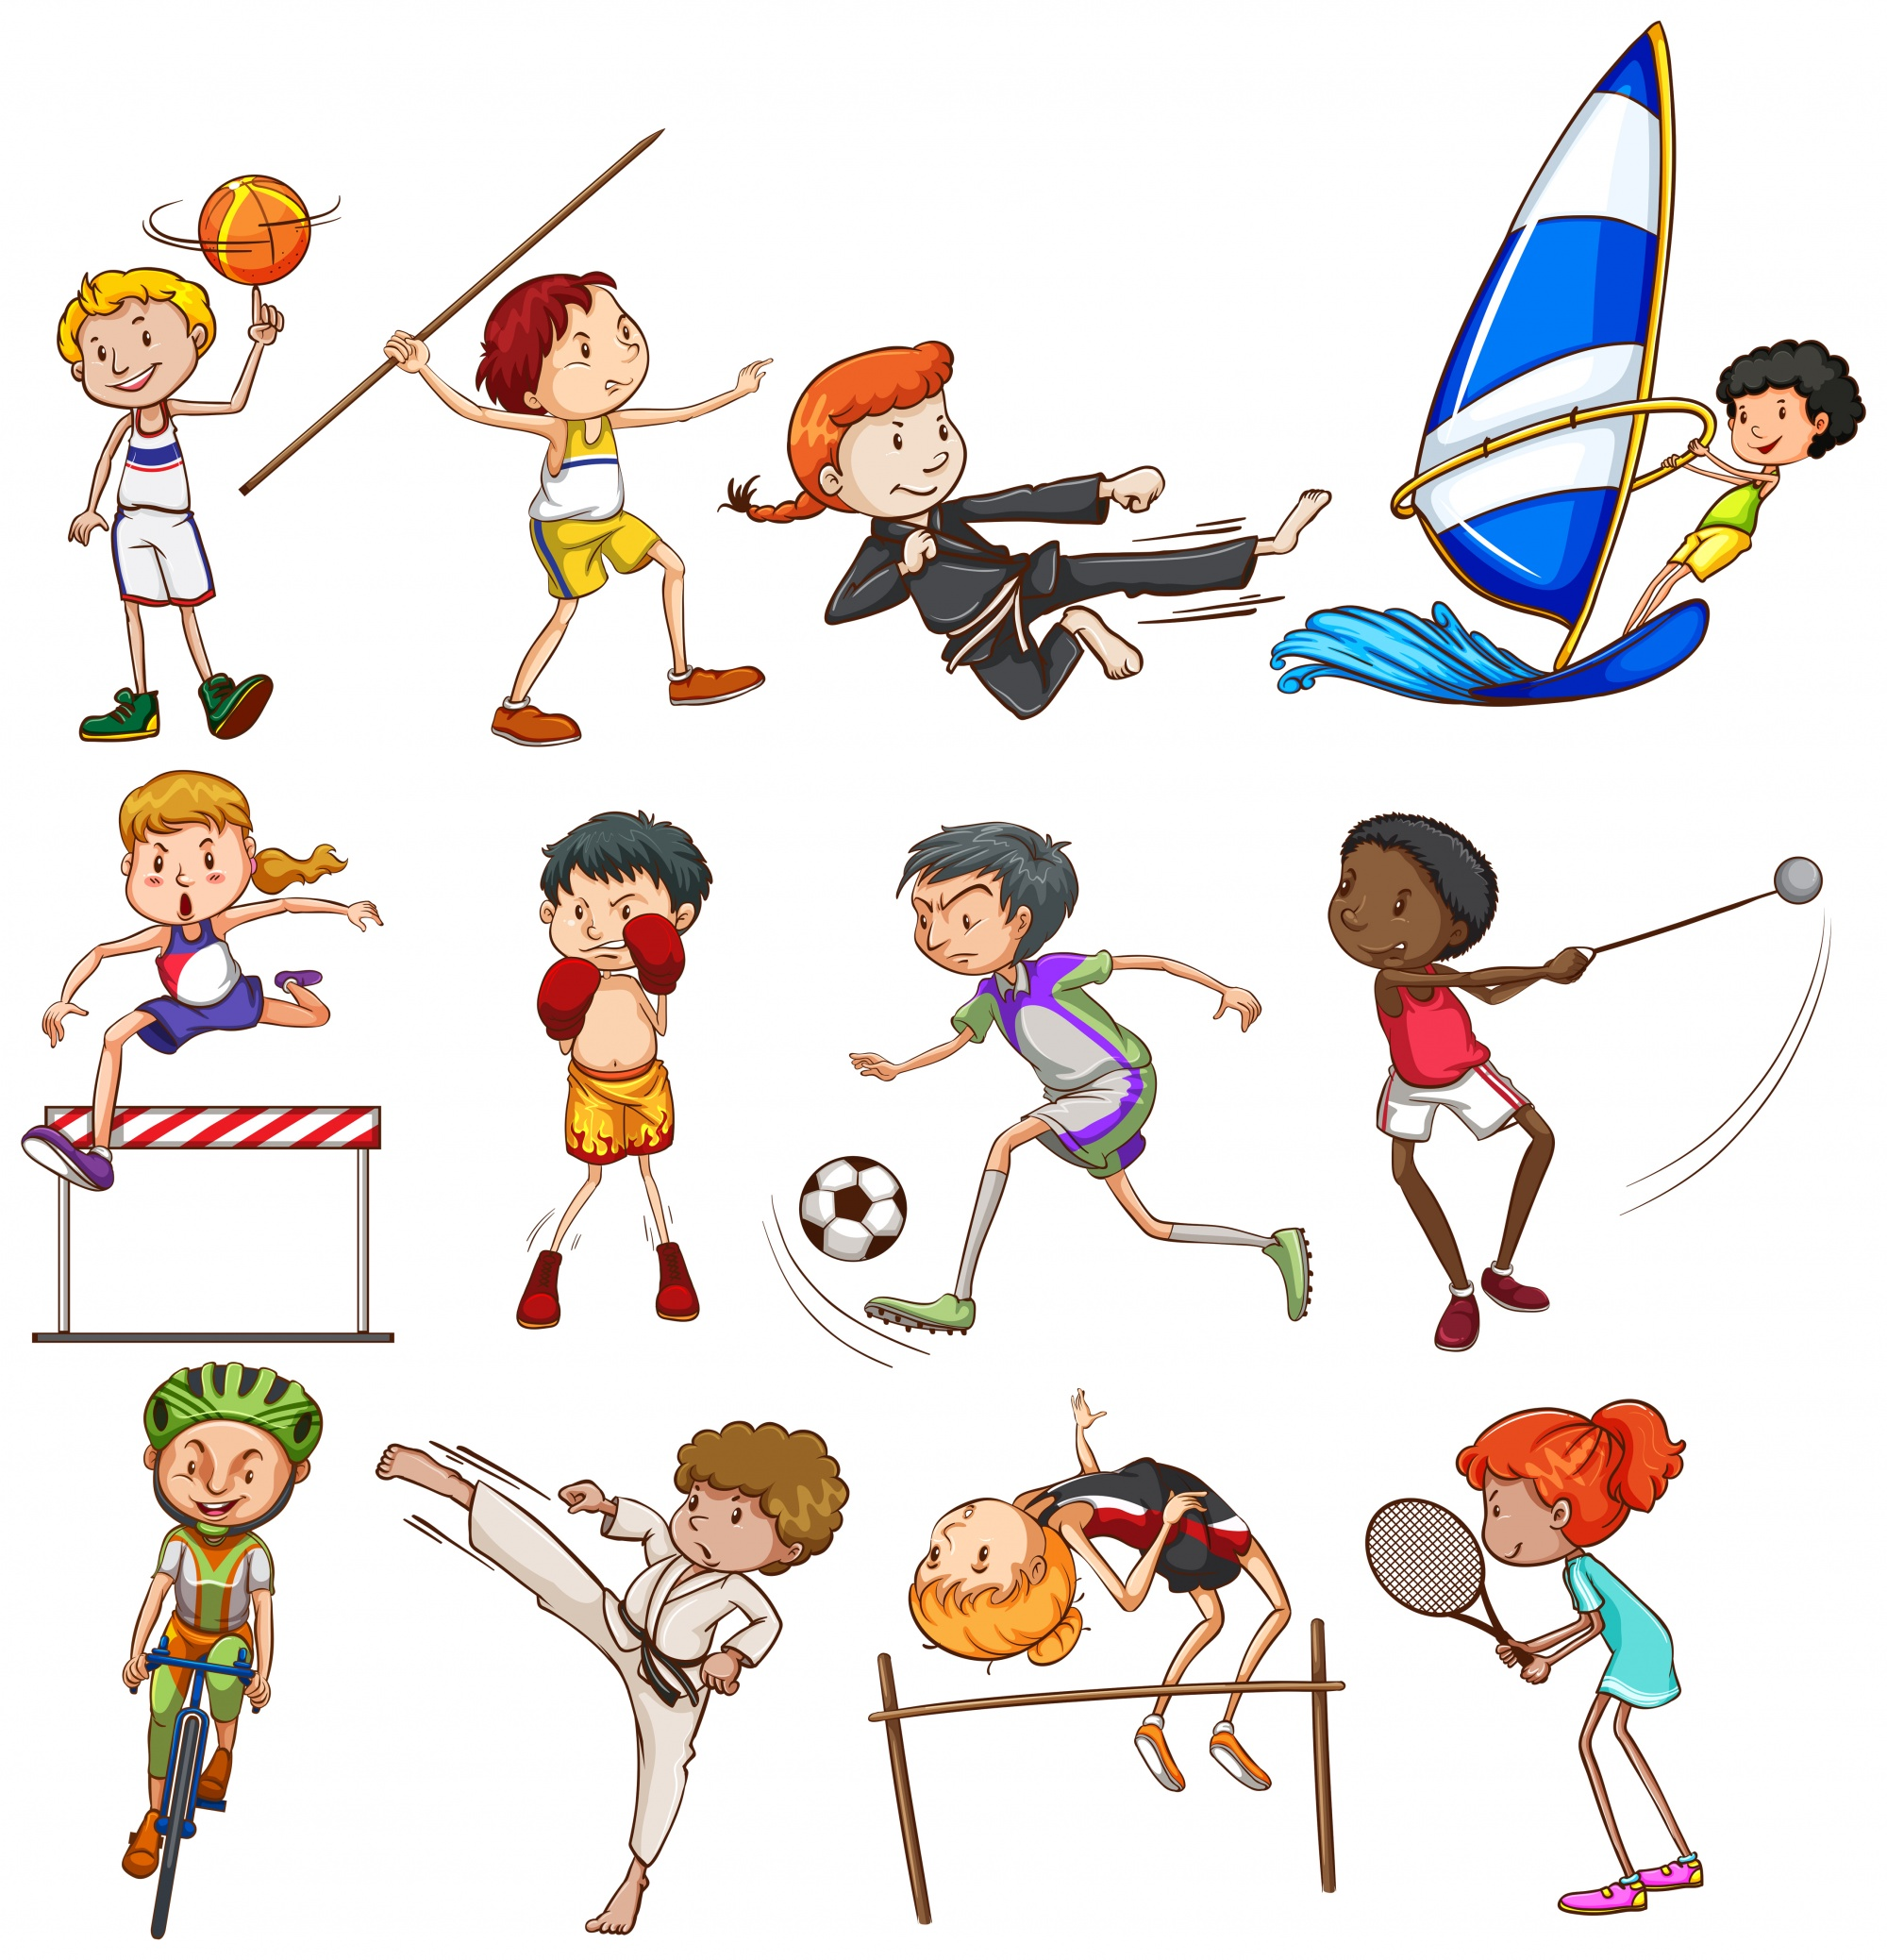 Different types of sports played by people